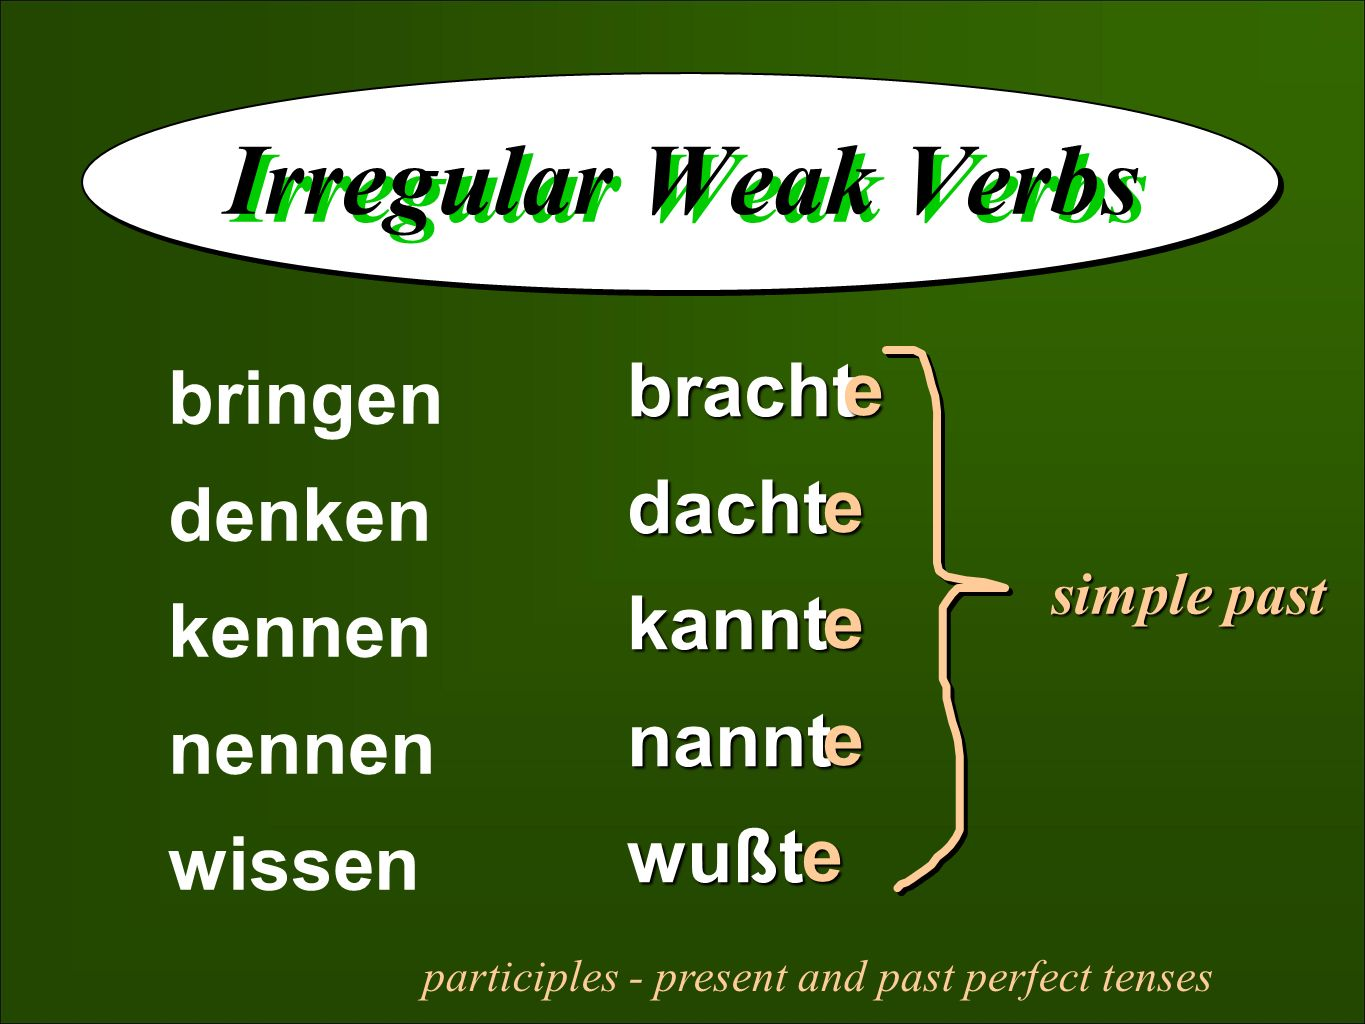 brachtdachtkanntnanntwußt Irregular Weak Verbs bringen denken kennen nennen wissen participles - present and past perfect tenses e e e ee simple past